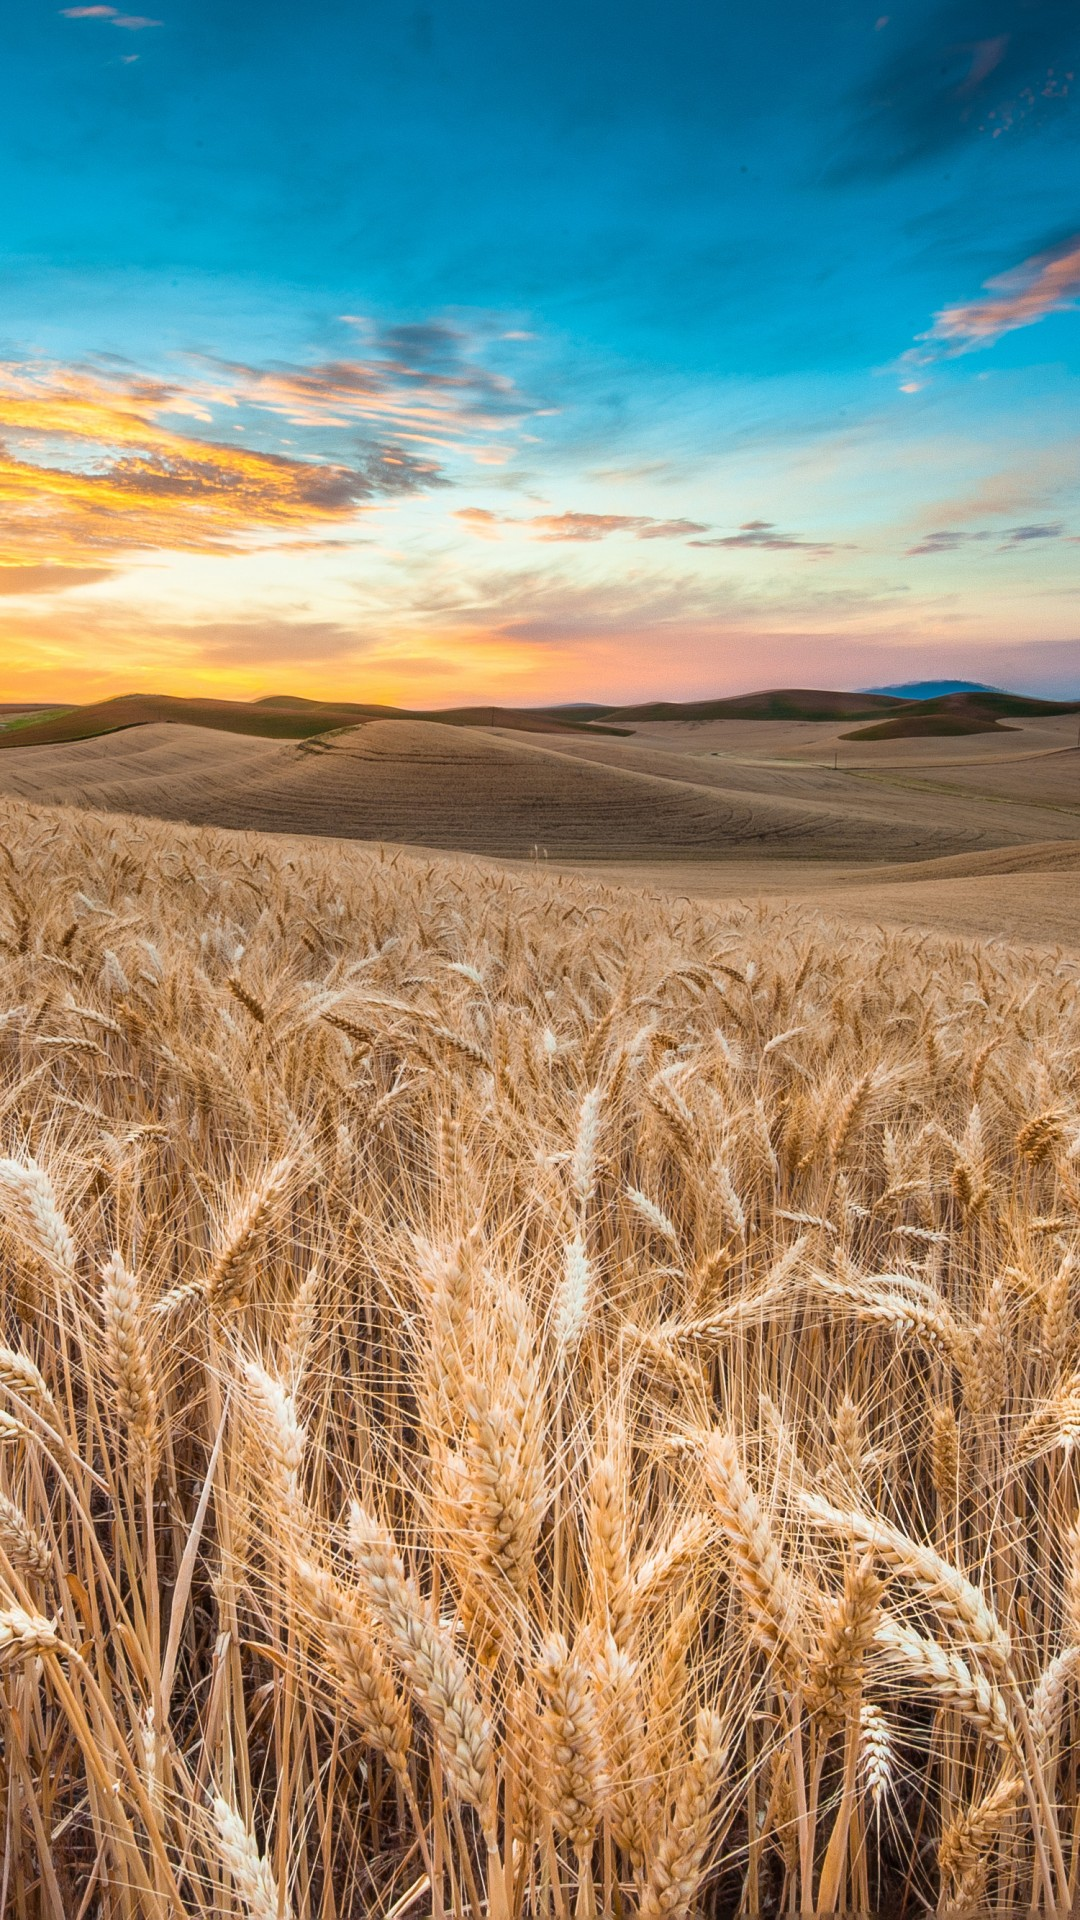 1920x1080 Wallpaper With Quoteds Wallpaper Field 4k Hd Wallpaper Wheat Spikes Sky